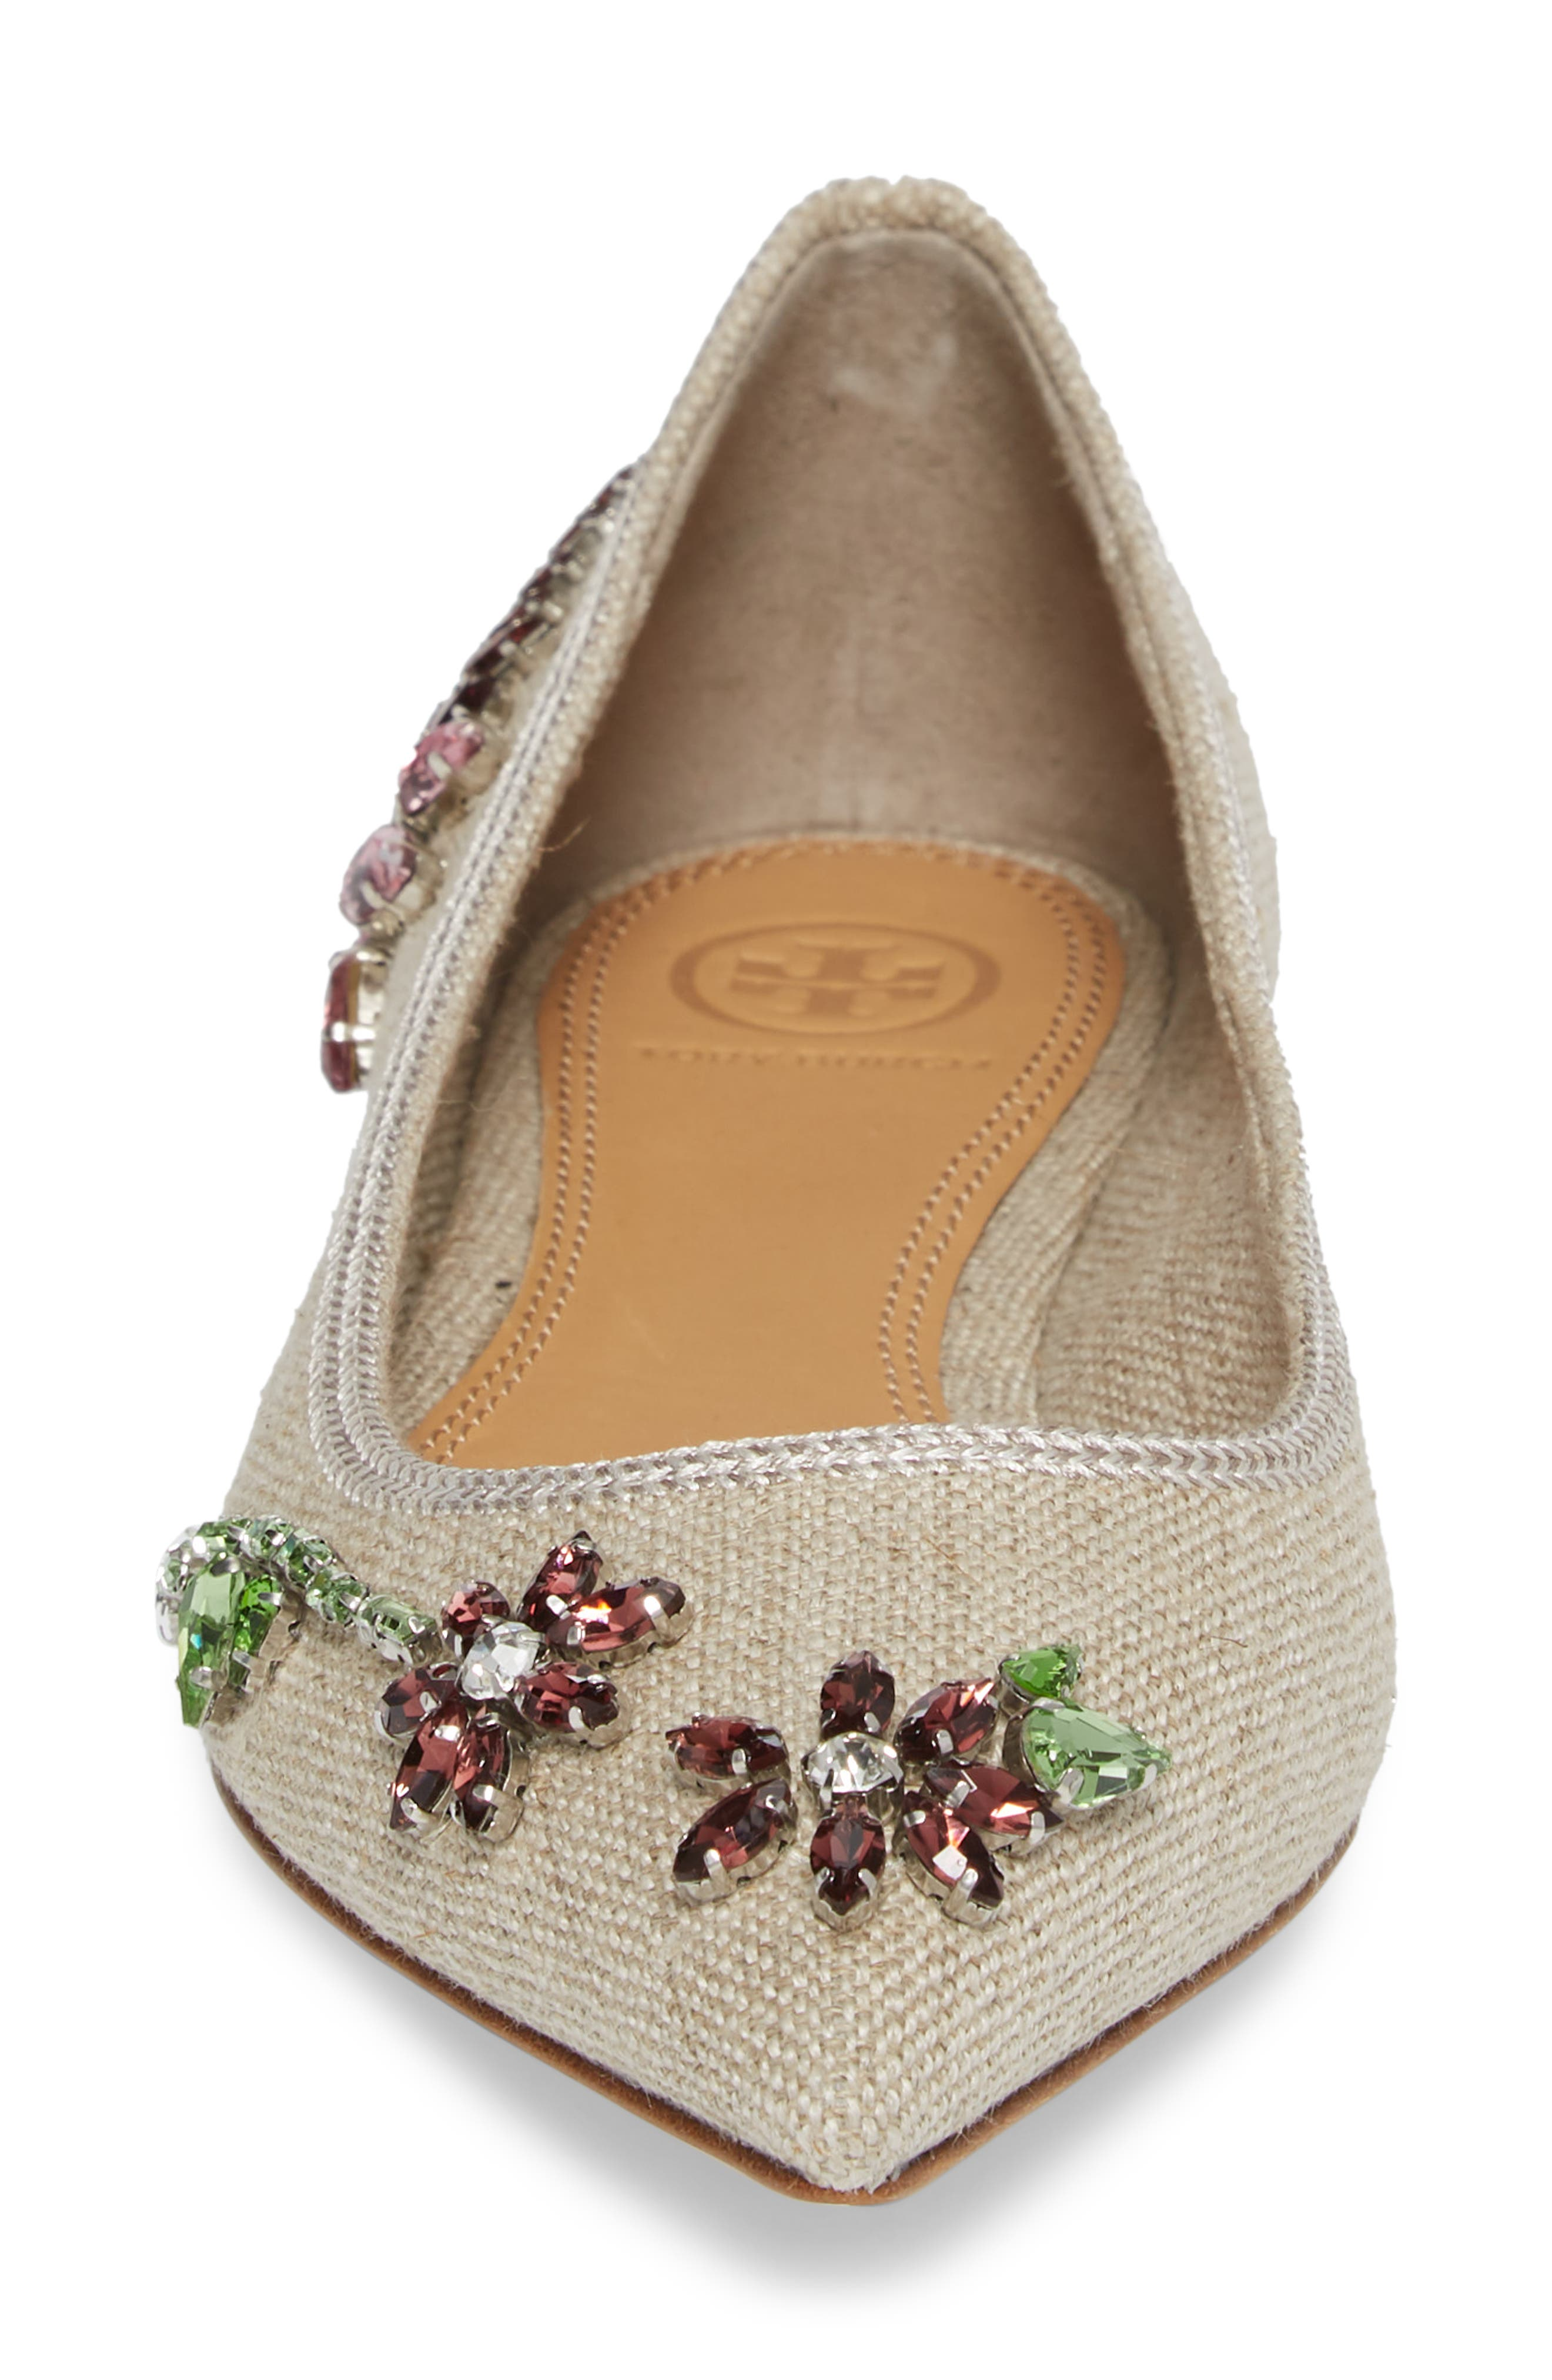 Meadow Embellished Pointy Toe Flat,                             Alternate thumbnail 4, color,                             021